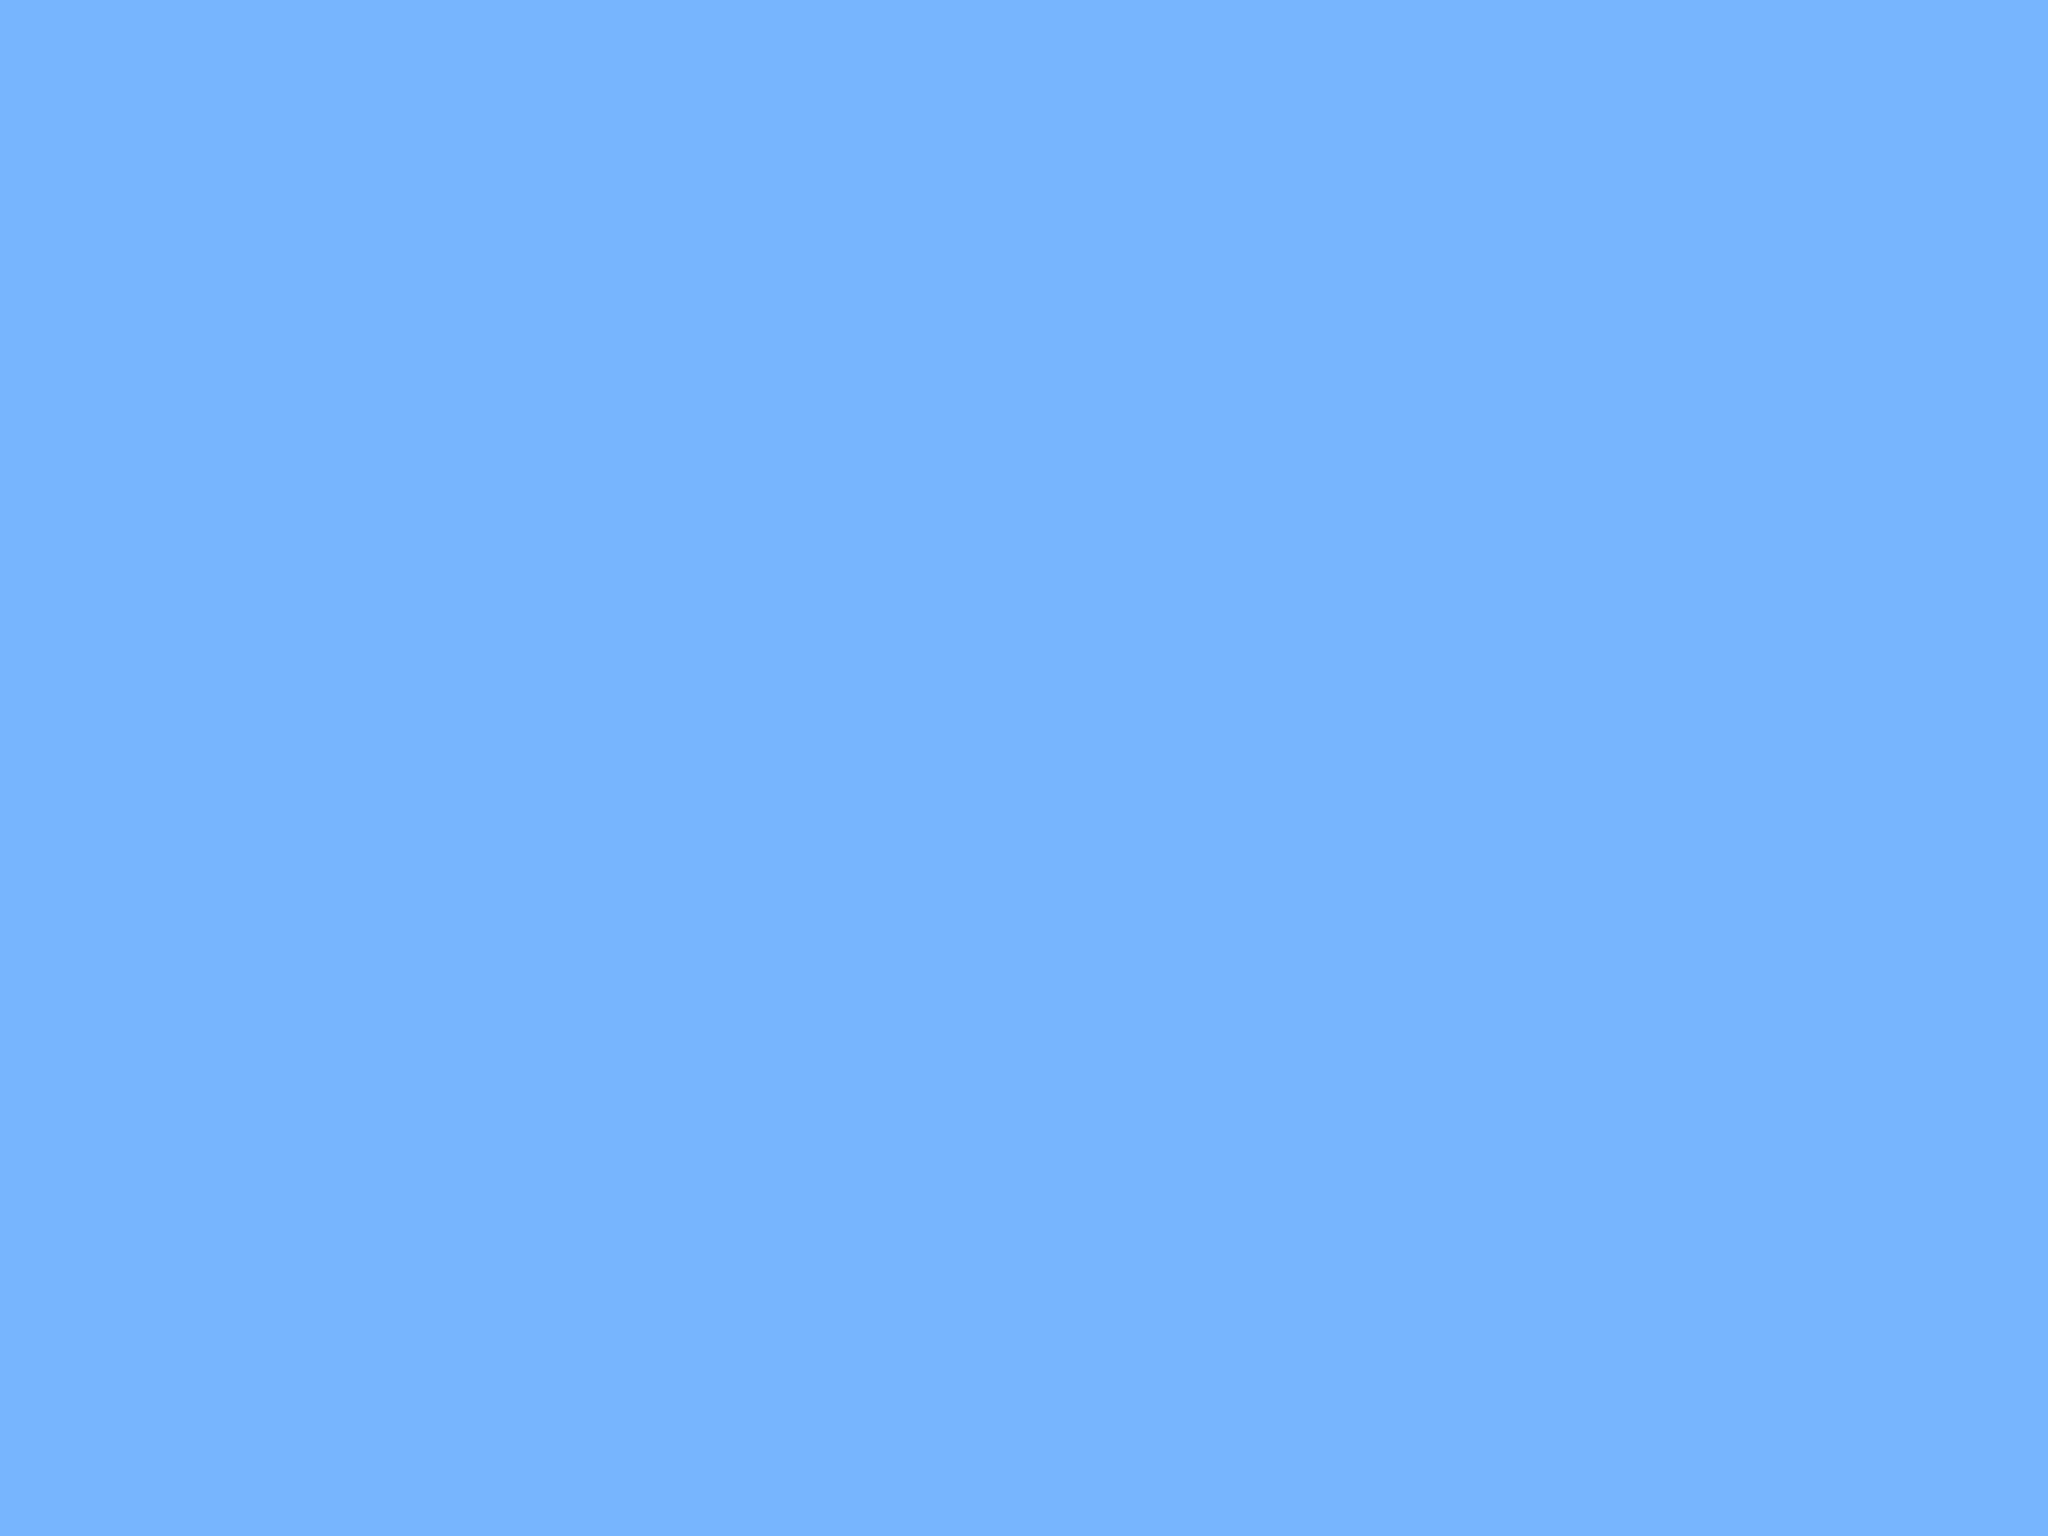 2048x1536 French Sky Blue Solid Color Background